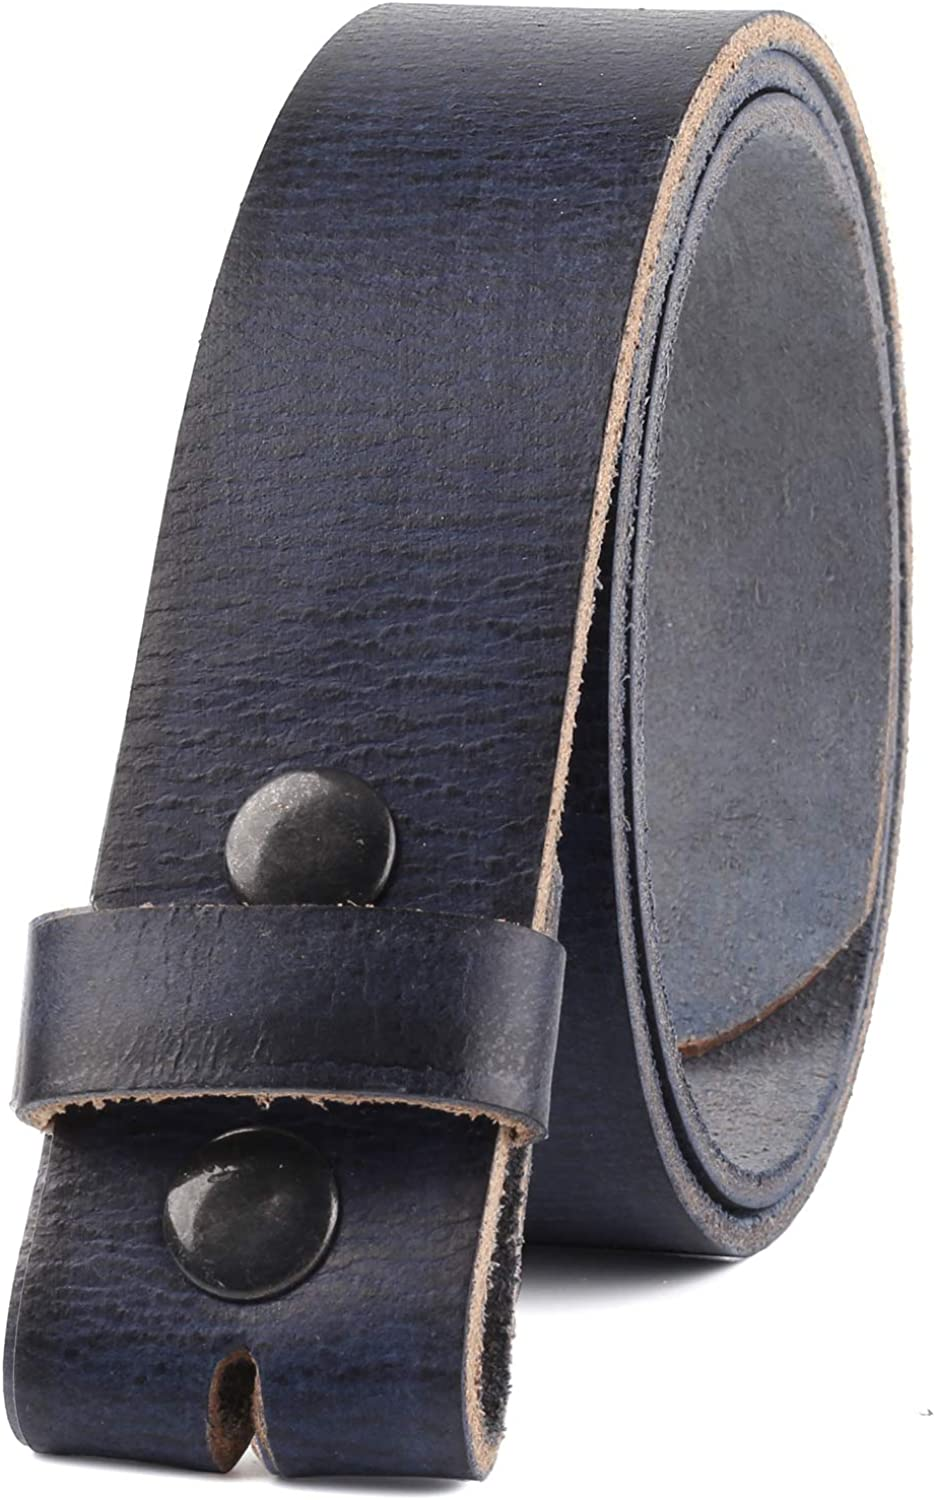 Belt for buckle men Snap on Strap Full Grain One Piece Leather no buckle,1 1//2 Wide Made in USA